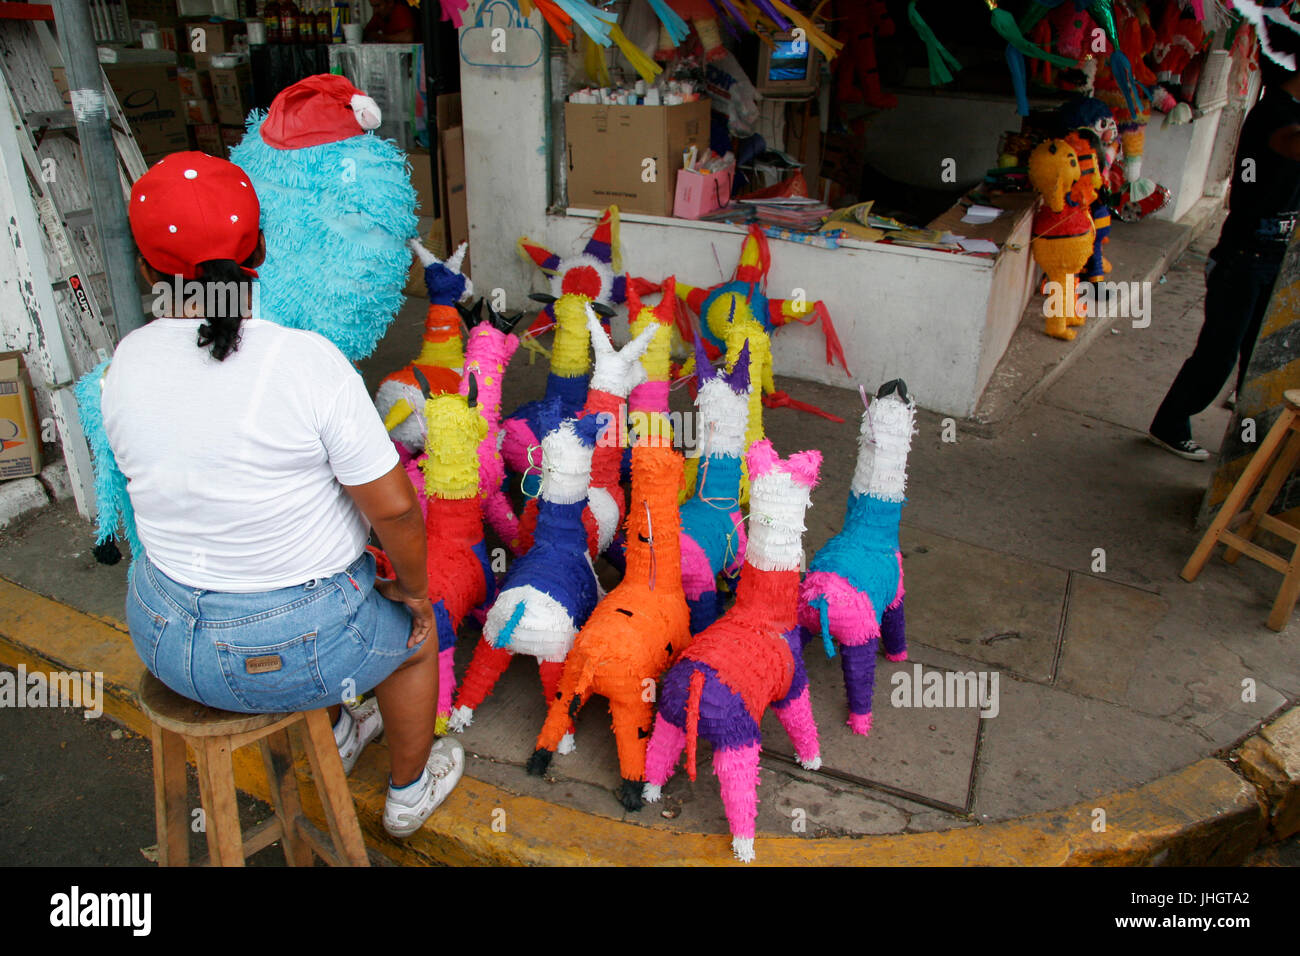 Piñatas mexicaines dans une rue de Villahermosa traditions, célébrations, Villahermosa, Tabasco, Photo Stock